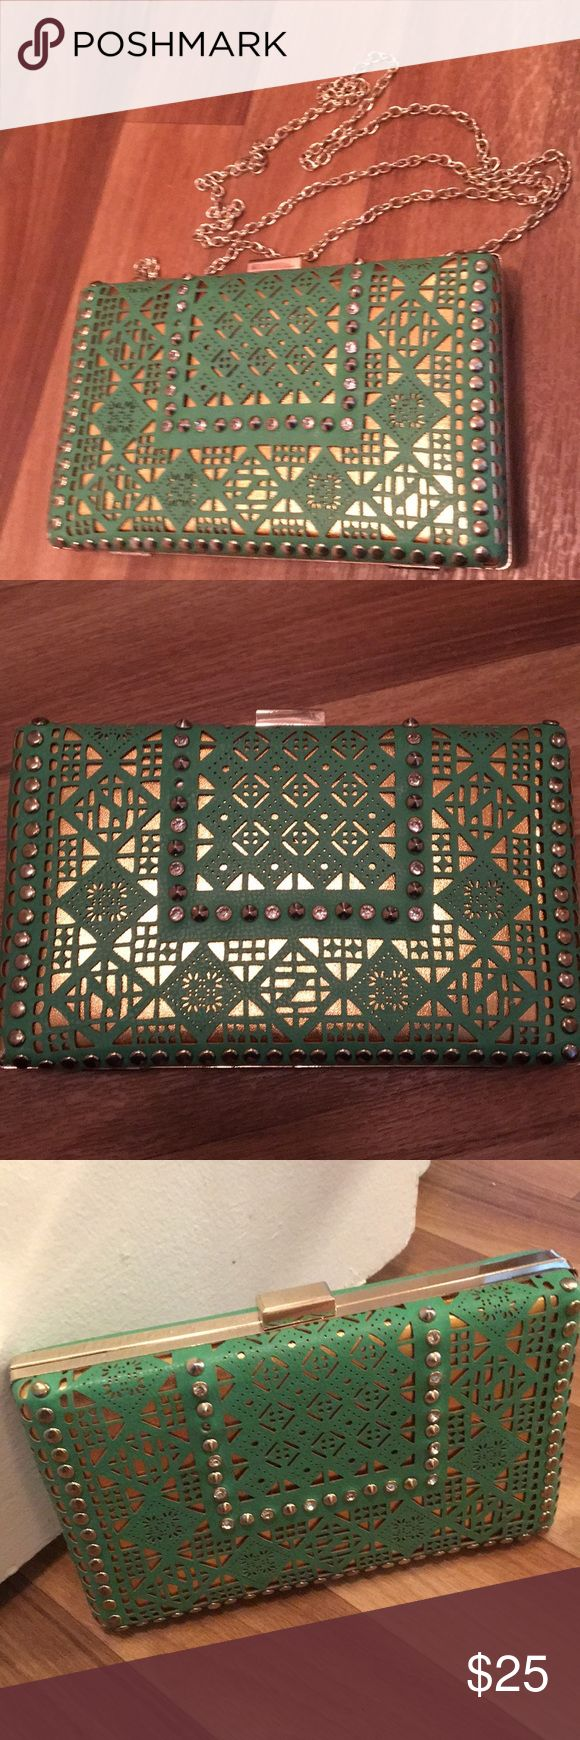 MMS Green and Gold Convert. Purse Clutch Beautiful green and gold convertible clutch or shoulder purse. Gold stud, and rhinestone details on the front. MMS Design Studio Bags Clutches & Wristlets